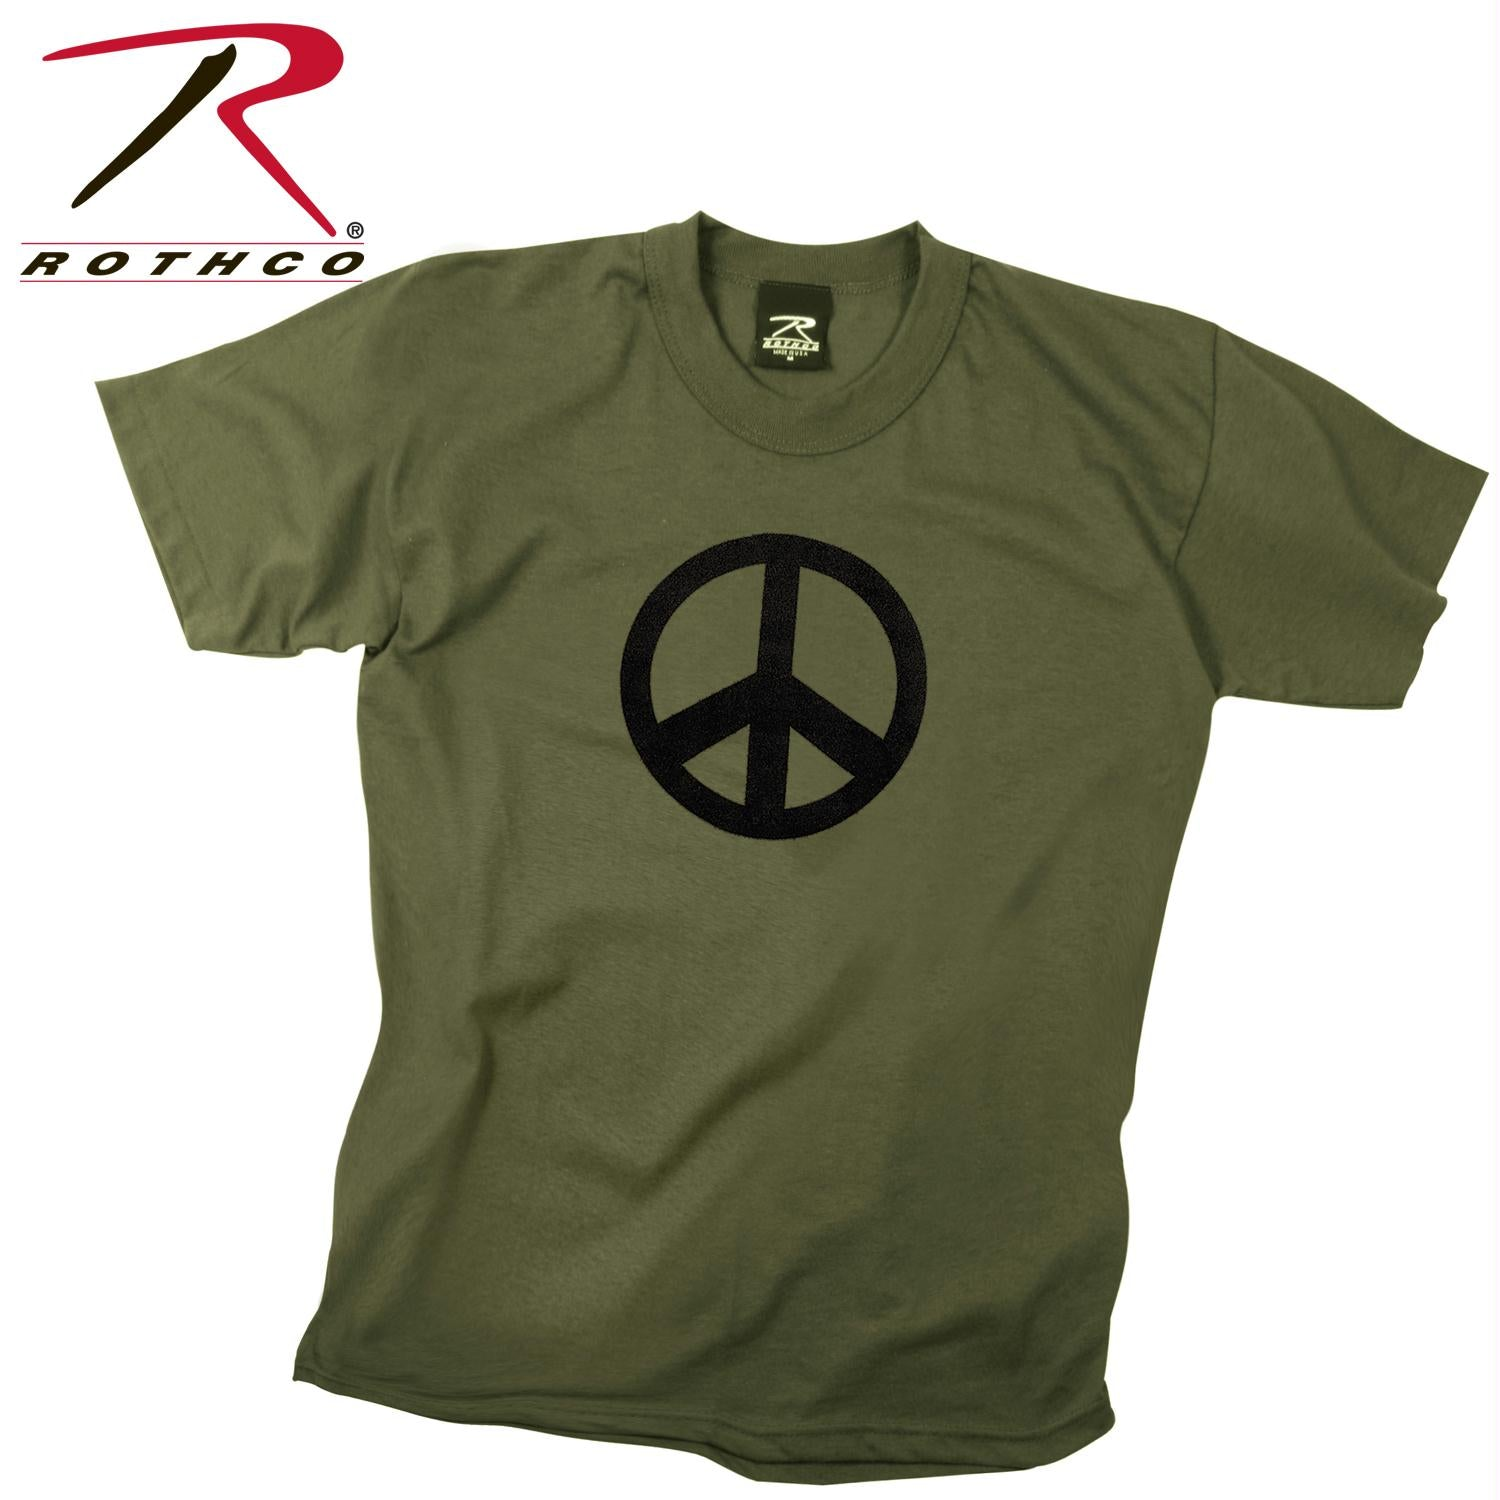 Rothco Peace T-shirt - 2XL